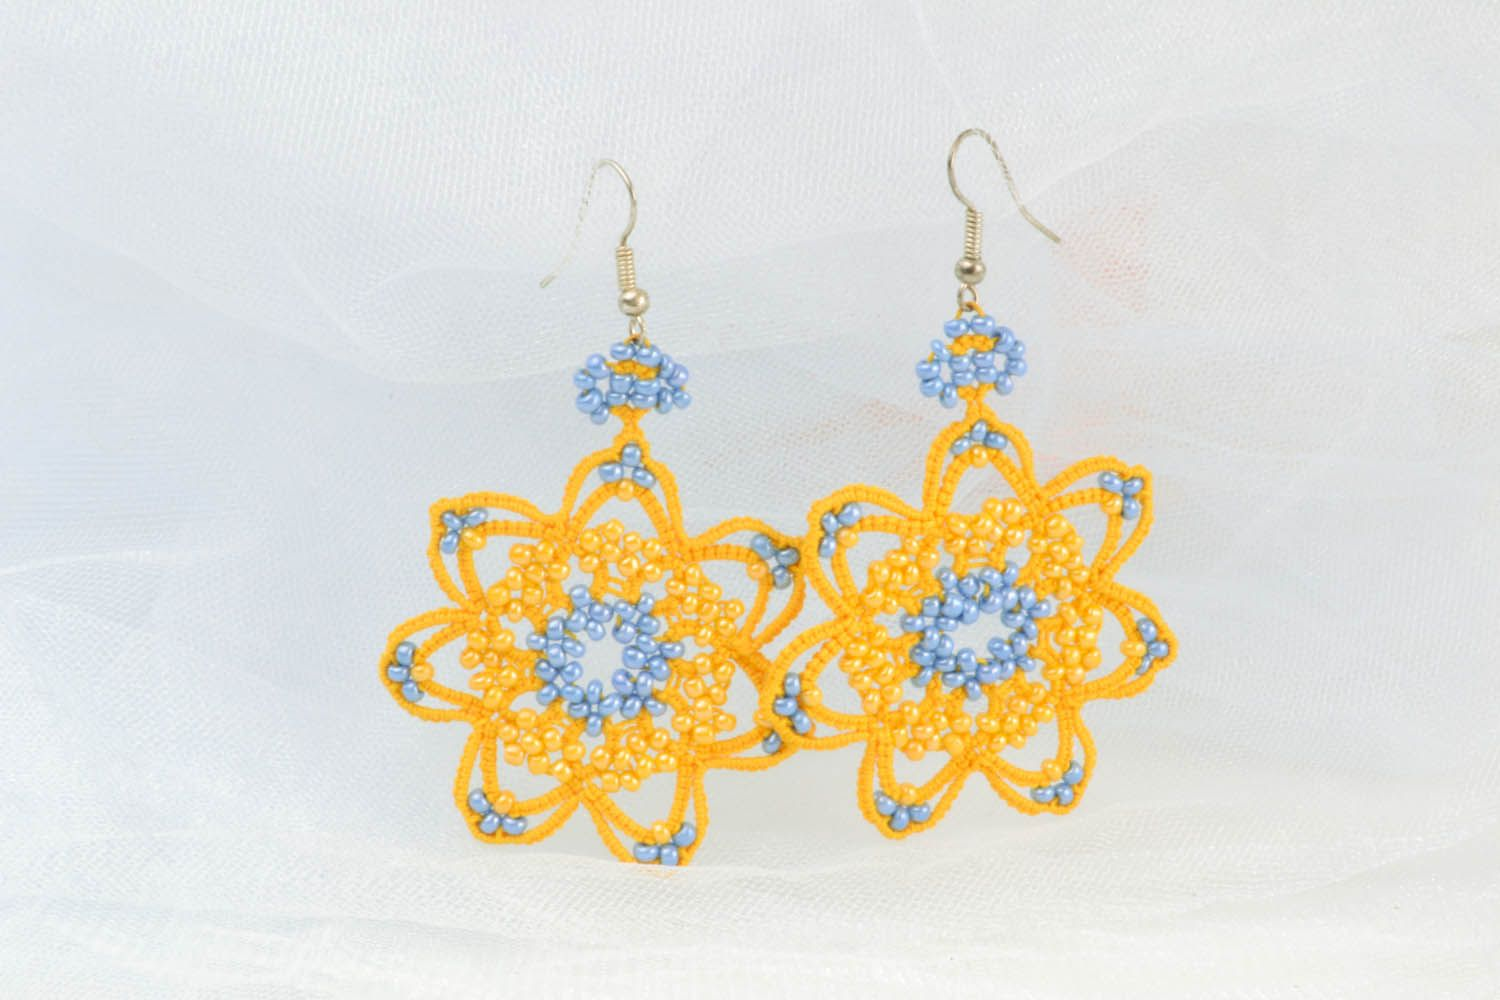 Lace earrings made using tatting technique photo 1